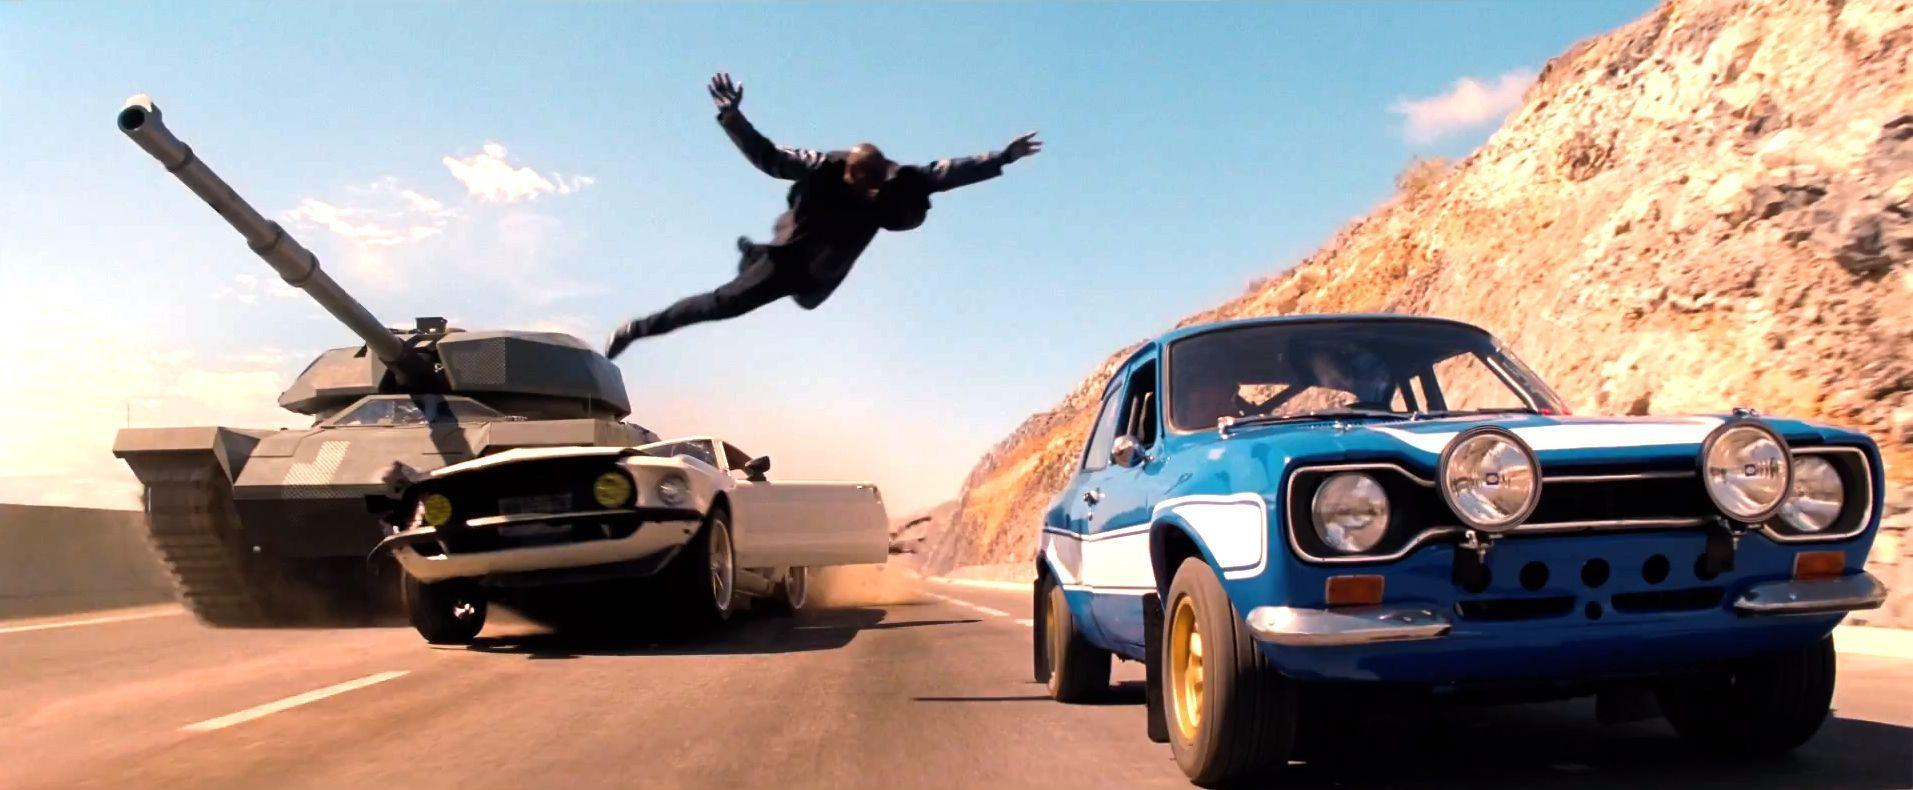 fast and furious 6 cars wallpapers 11969 dodge daytona front - Fast And Furious 6 Cars Wallpapers